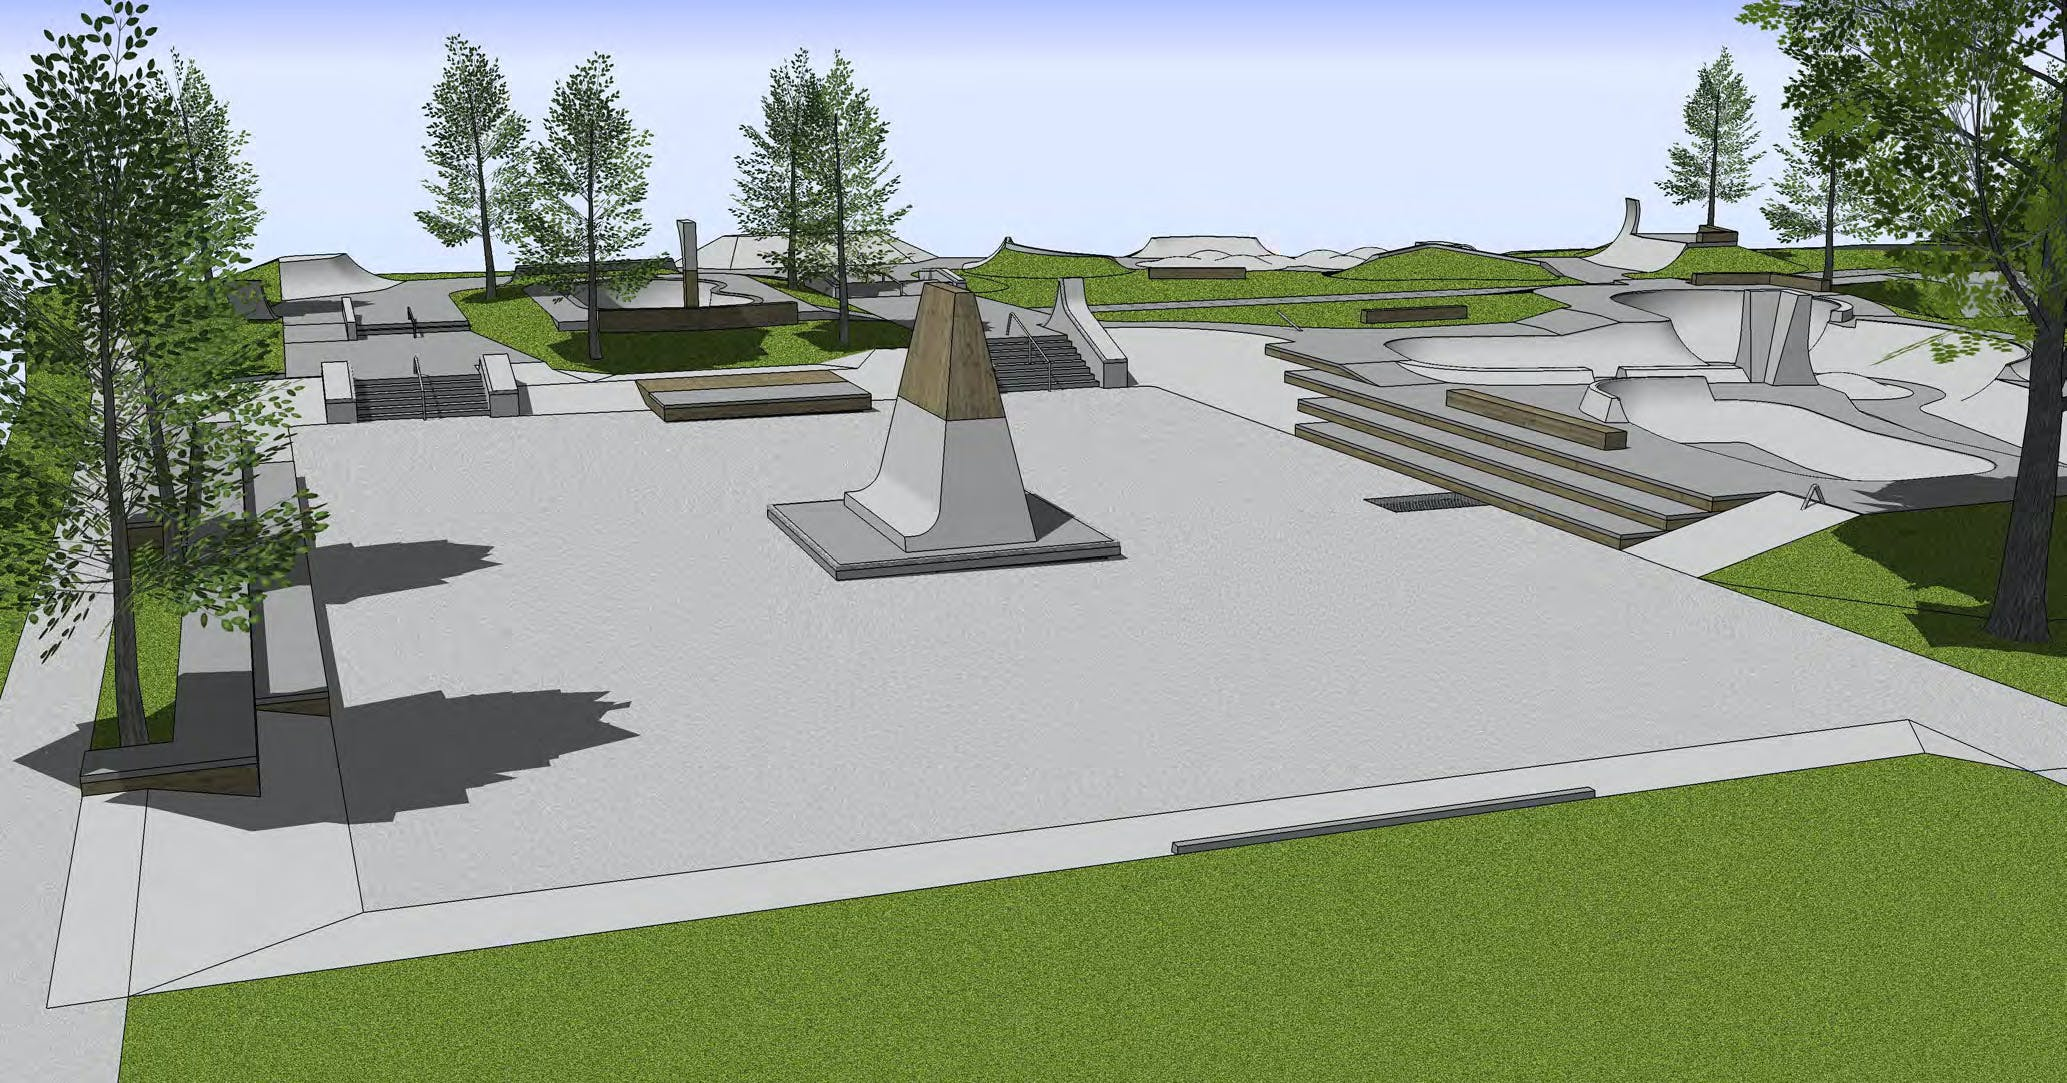 Open plaza and skateable art feature